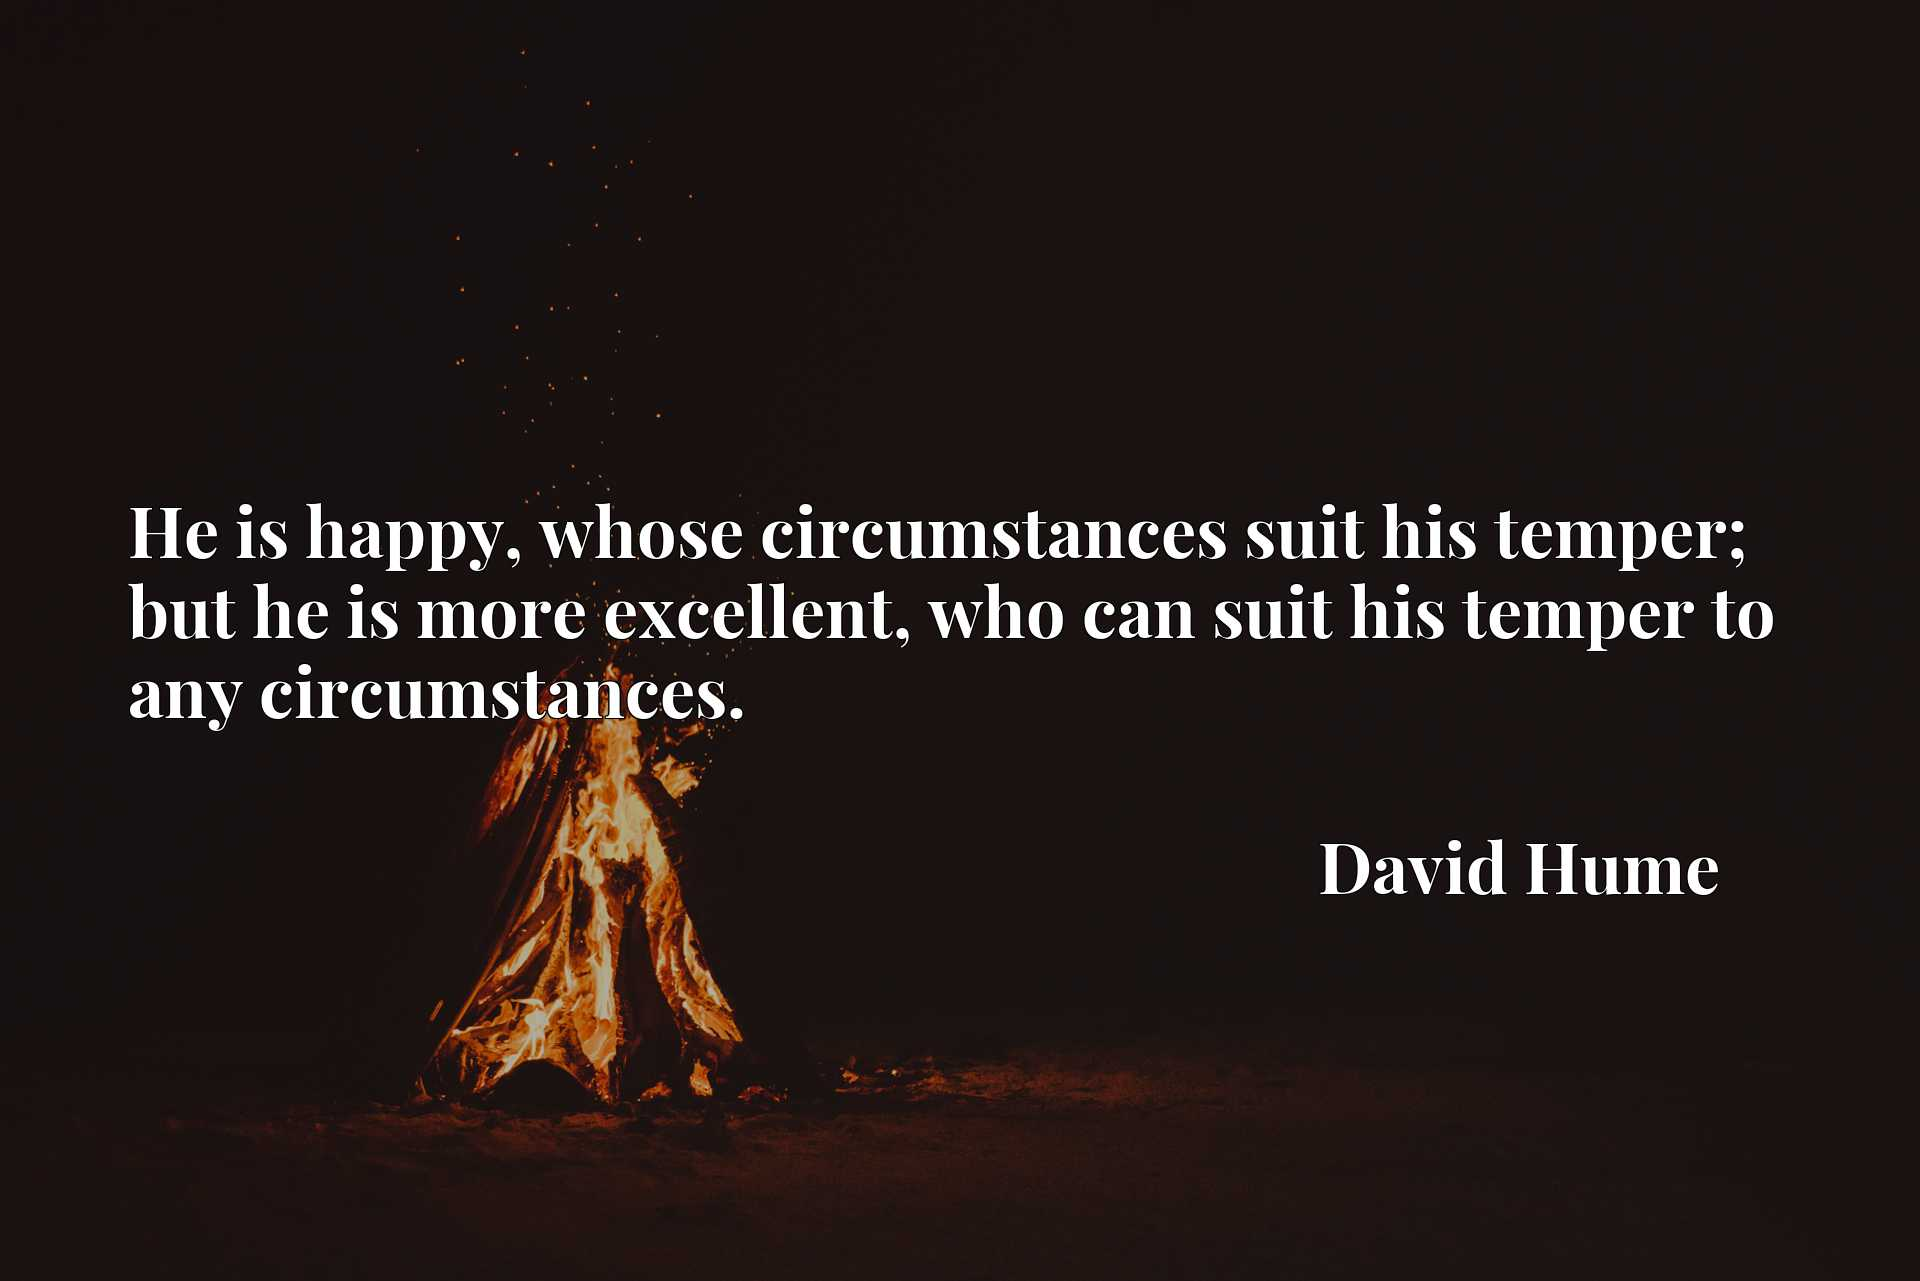 Quote Picture :He is happy, whose circumstances suit his temper; but he is more excellent, who can suit his temper to any circumstances.